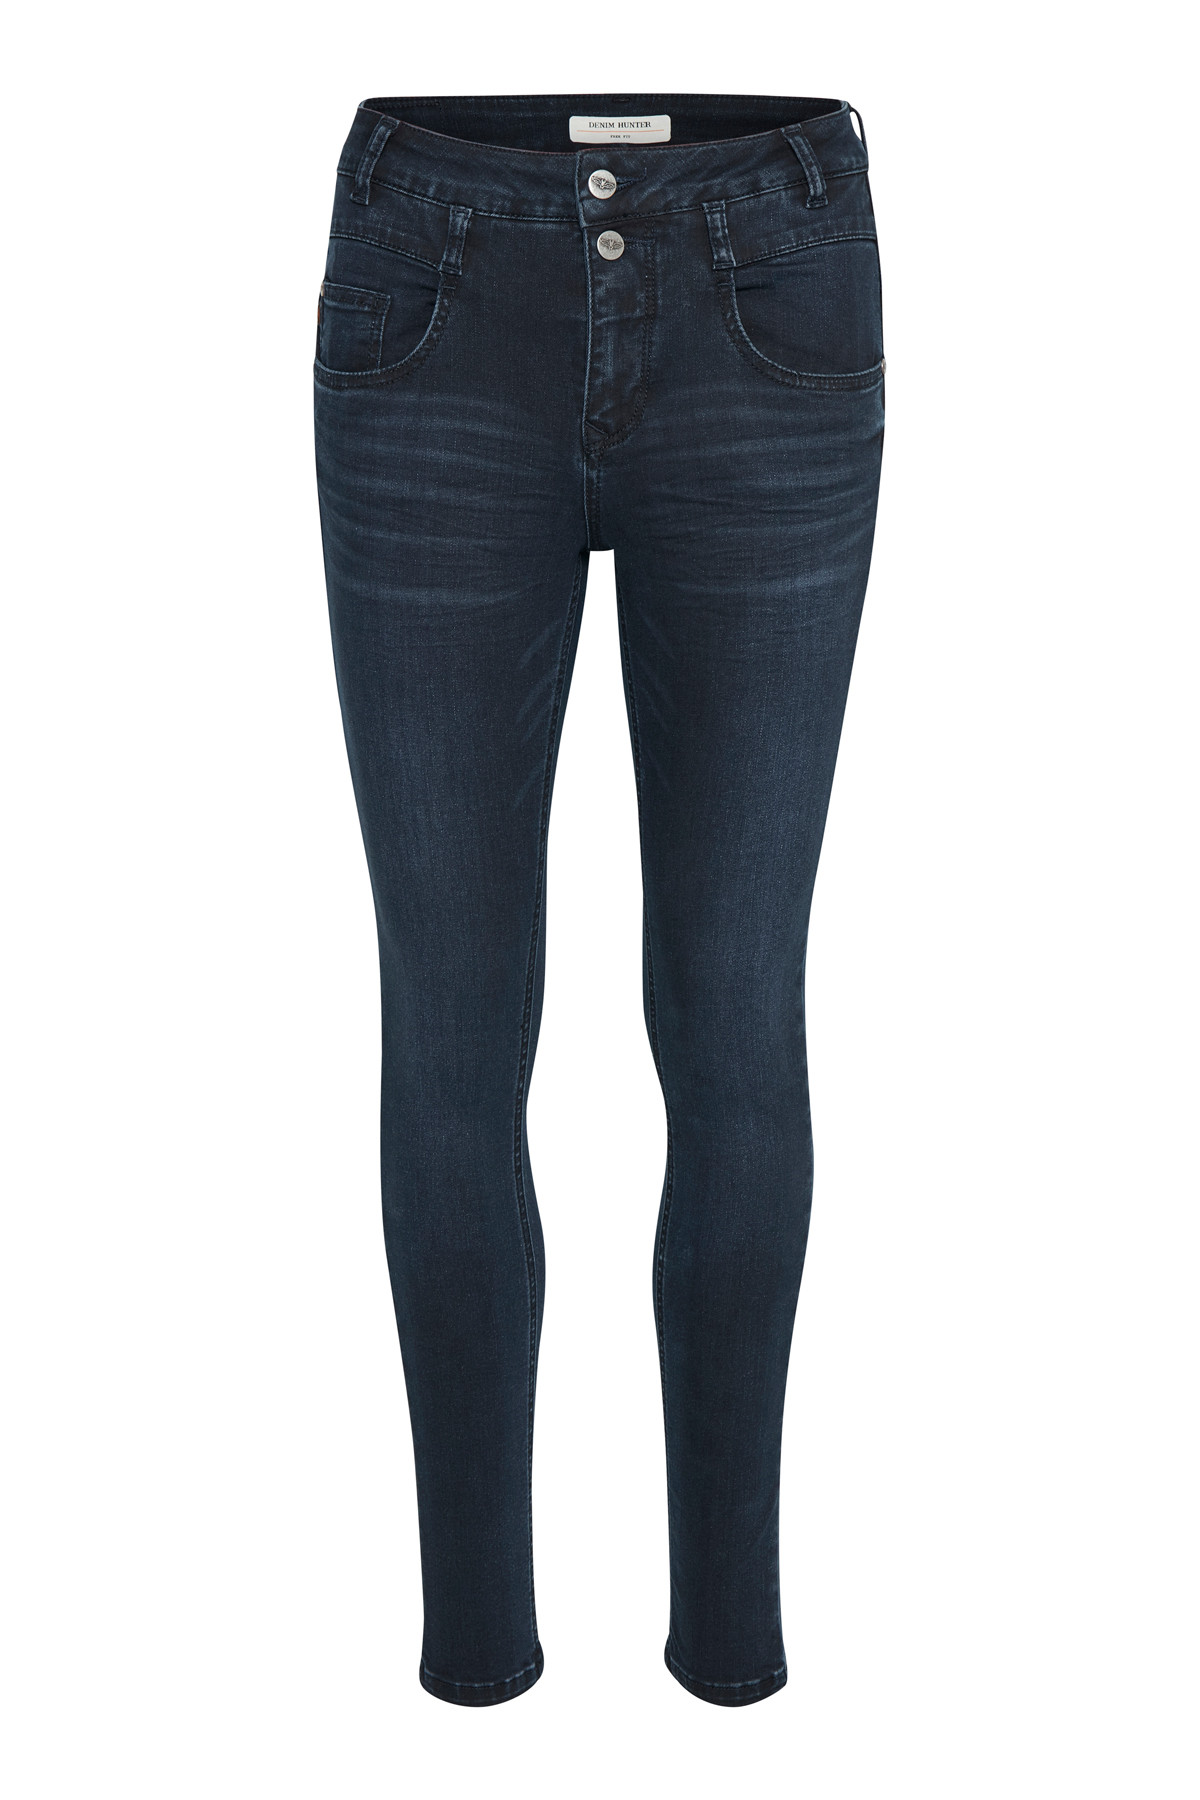 Image of   Denim Hunter FIOLA FREE JEANS 10701295 D (Dark Denim 38002, 31)